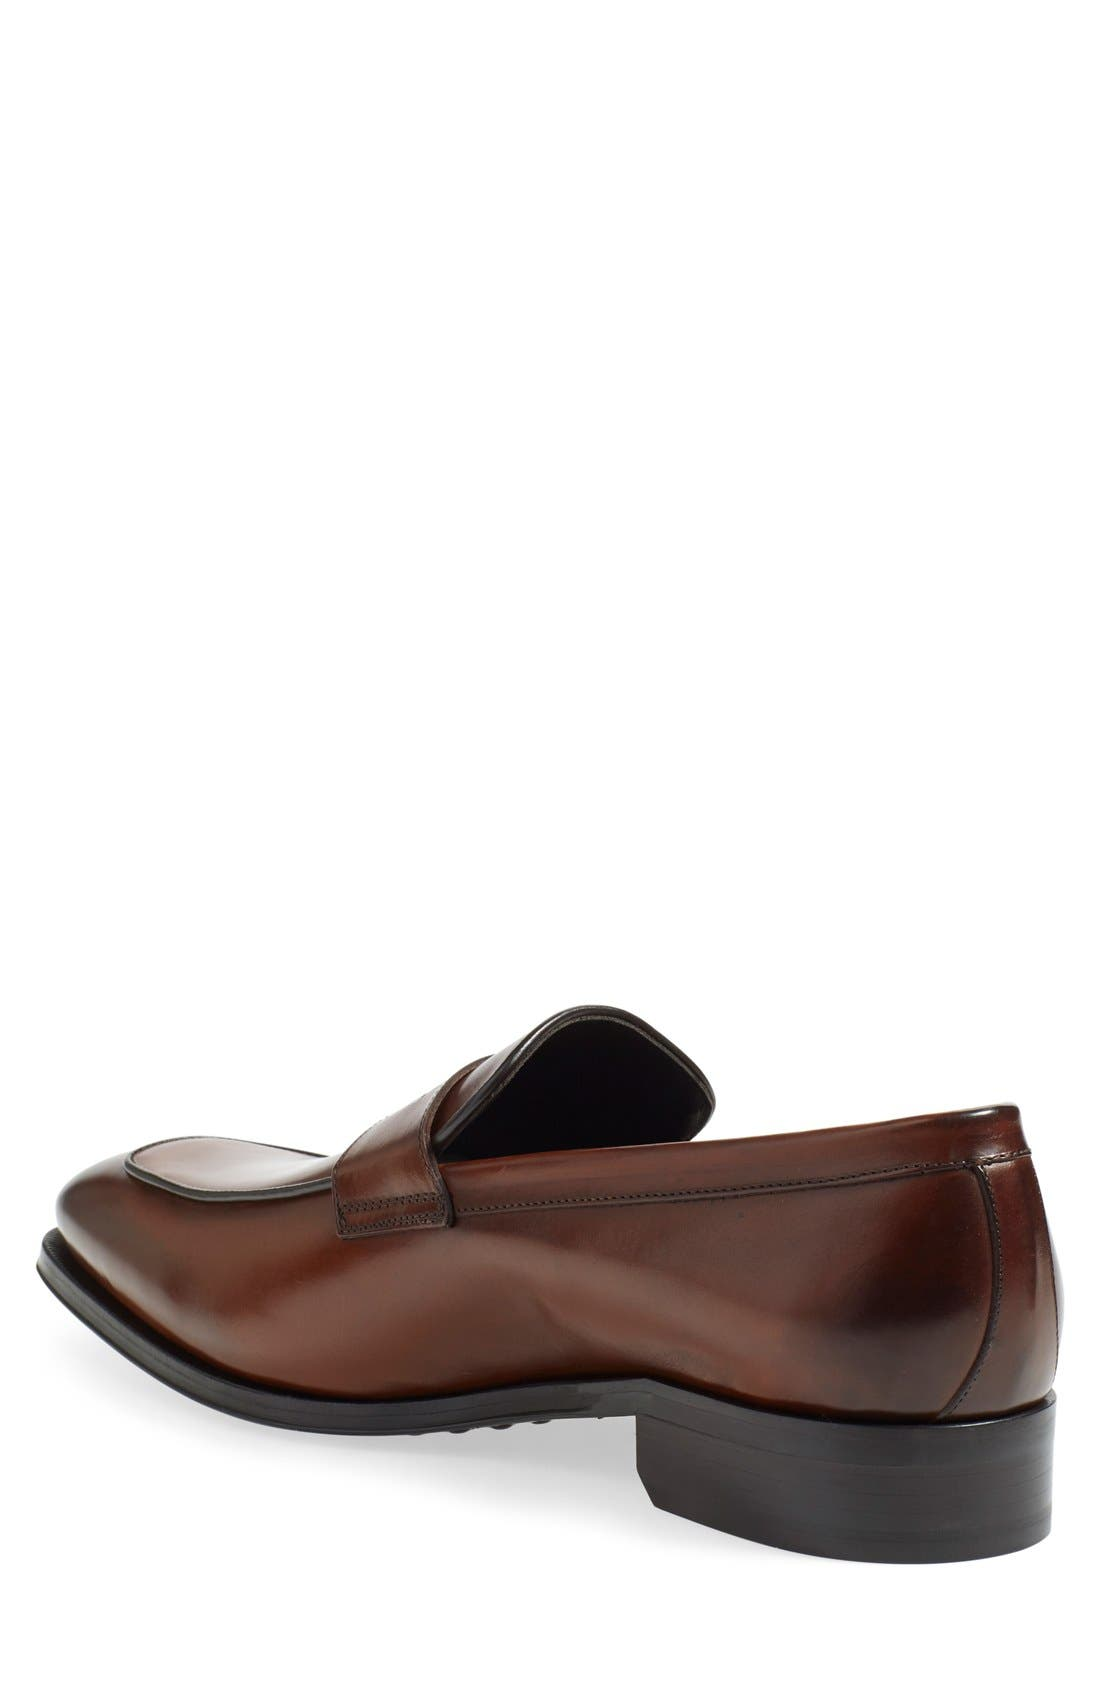 Alternate Image 4  - To Boot New York Dupont Penny Loafer (Men)